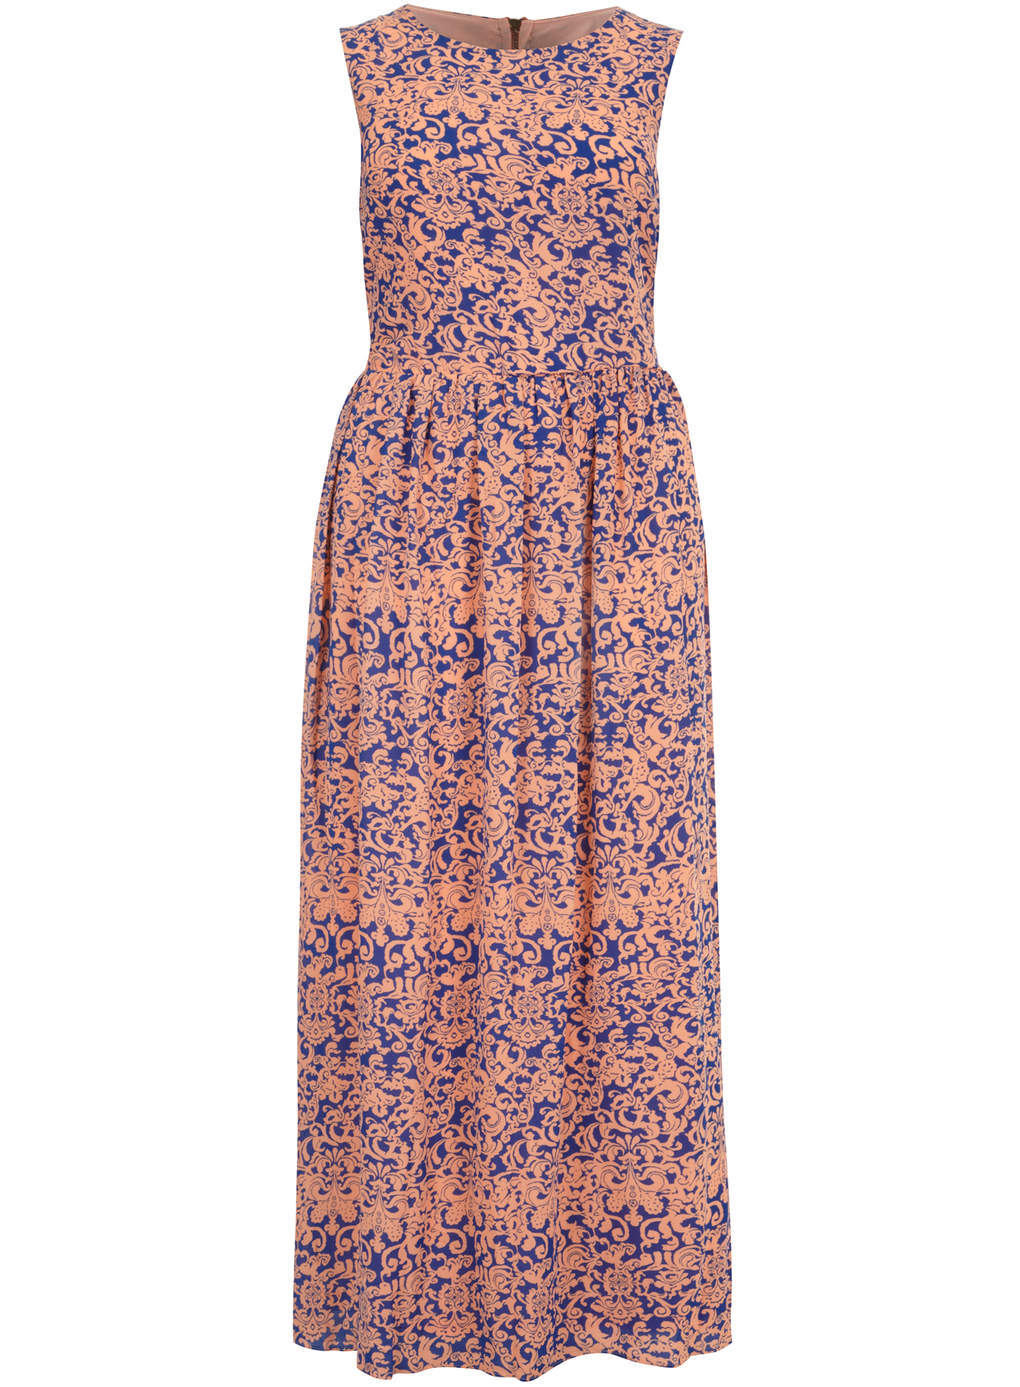 Koko Koko Coral & Blue Multi Print Maxi Dress - sleeve style: sleeveless; style: maxi dress; length: ankle length; pattern: paisley; predominant colour: pink; secondary colour: royal blue; occasions: casual, holiday; fit: fitted at waist & bust; fibres: polyester/polyamide - 100%; neckline: crew; sleeve length: sleeveless; pattern type: fabric; pattern size: standard; texture group: other - light to midweight; season: s/s 2014